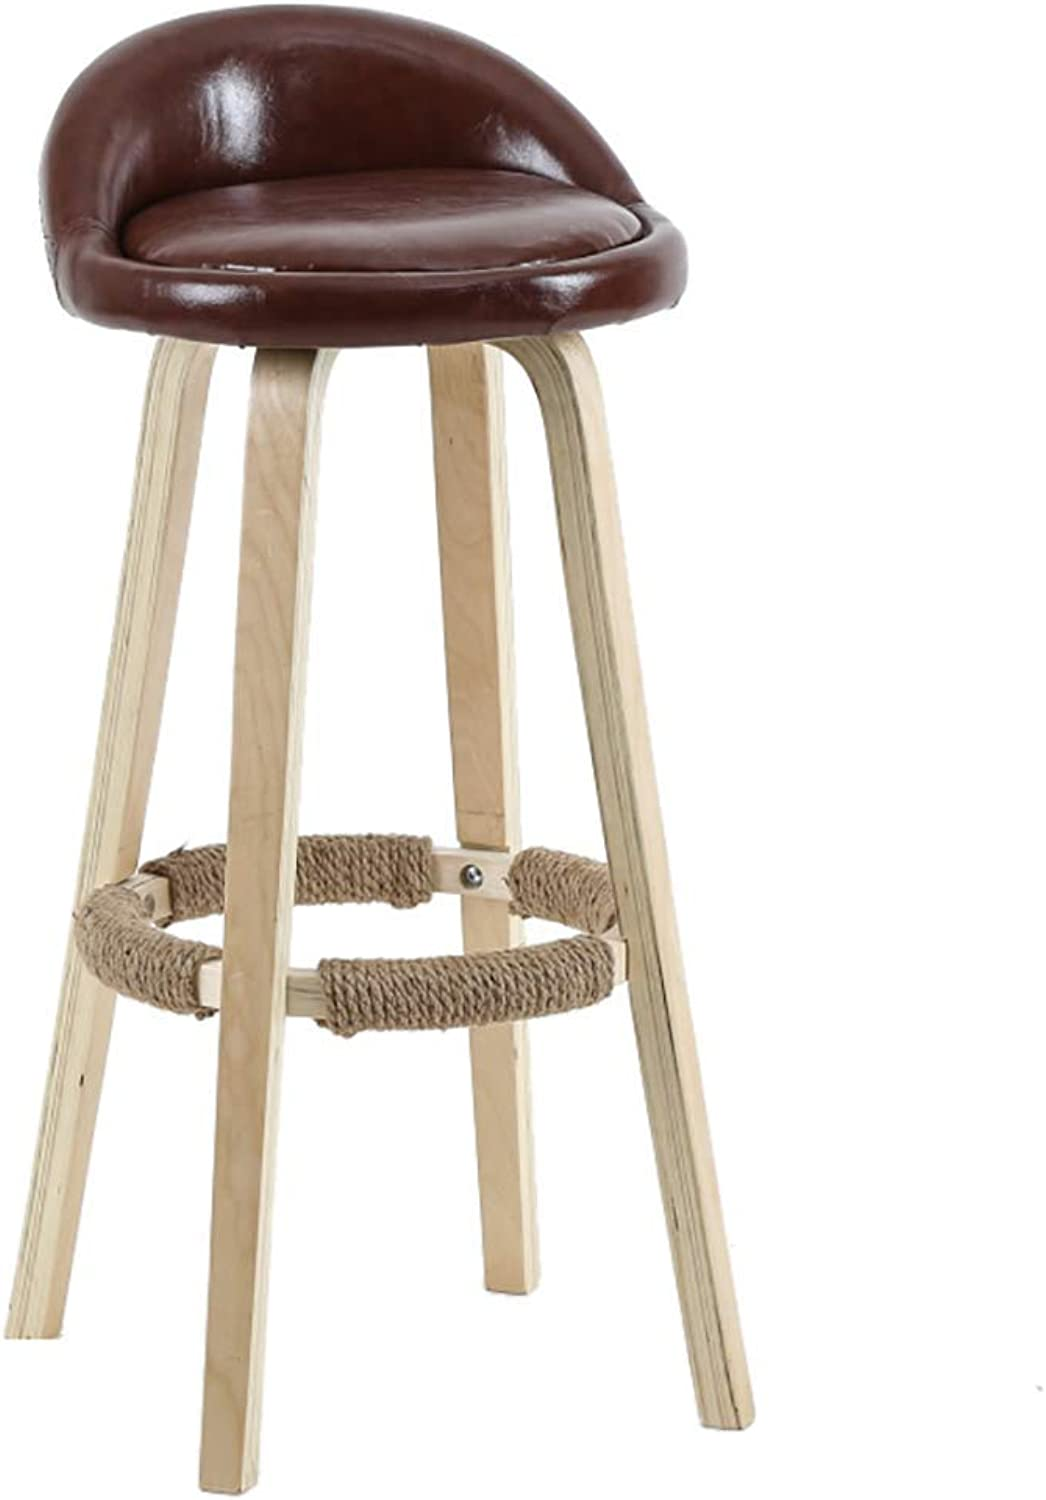 Solid Wood Bar Stool, Simple Backrest High Stool, High Rebound Sponge Filling + Fabric Leather Cushion, for Kitchen   Breakfast   Counter   Conservatory   Café   Pub